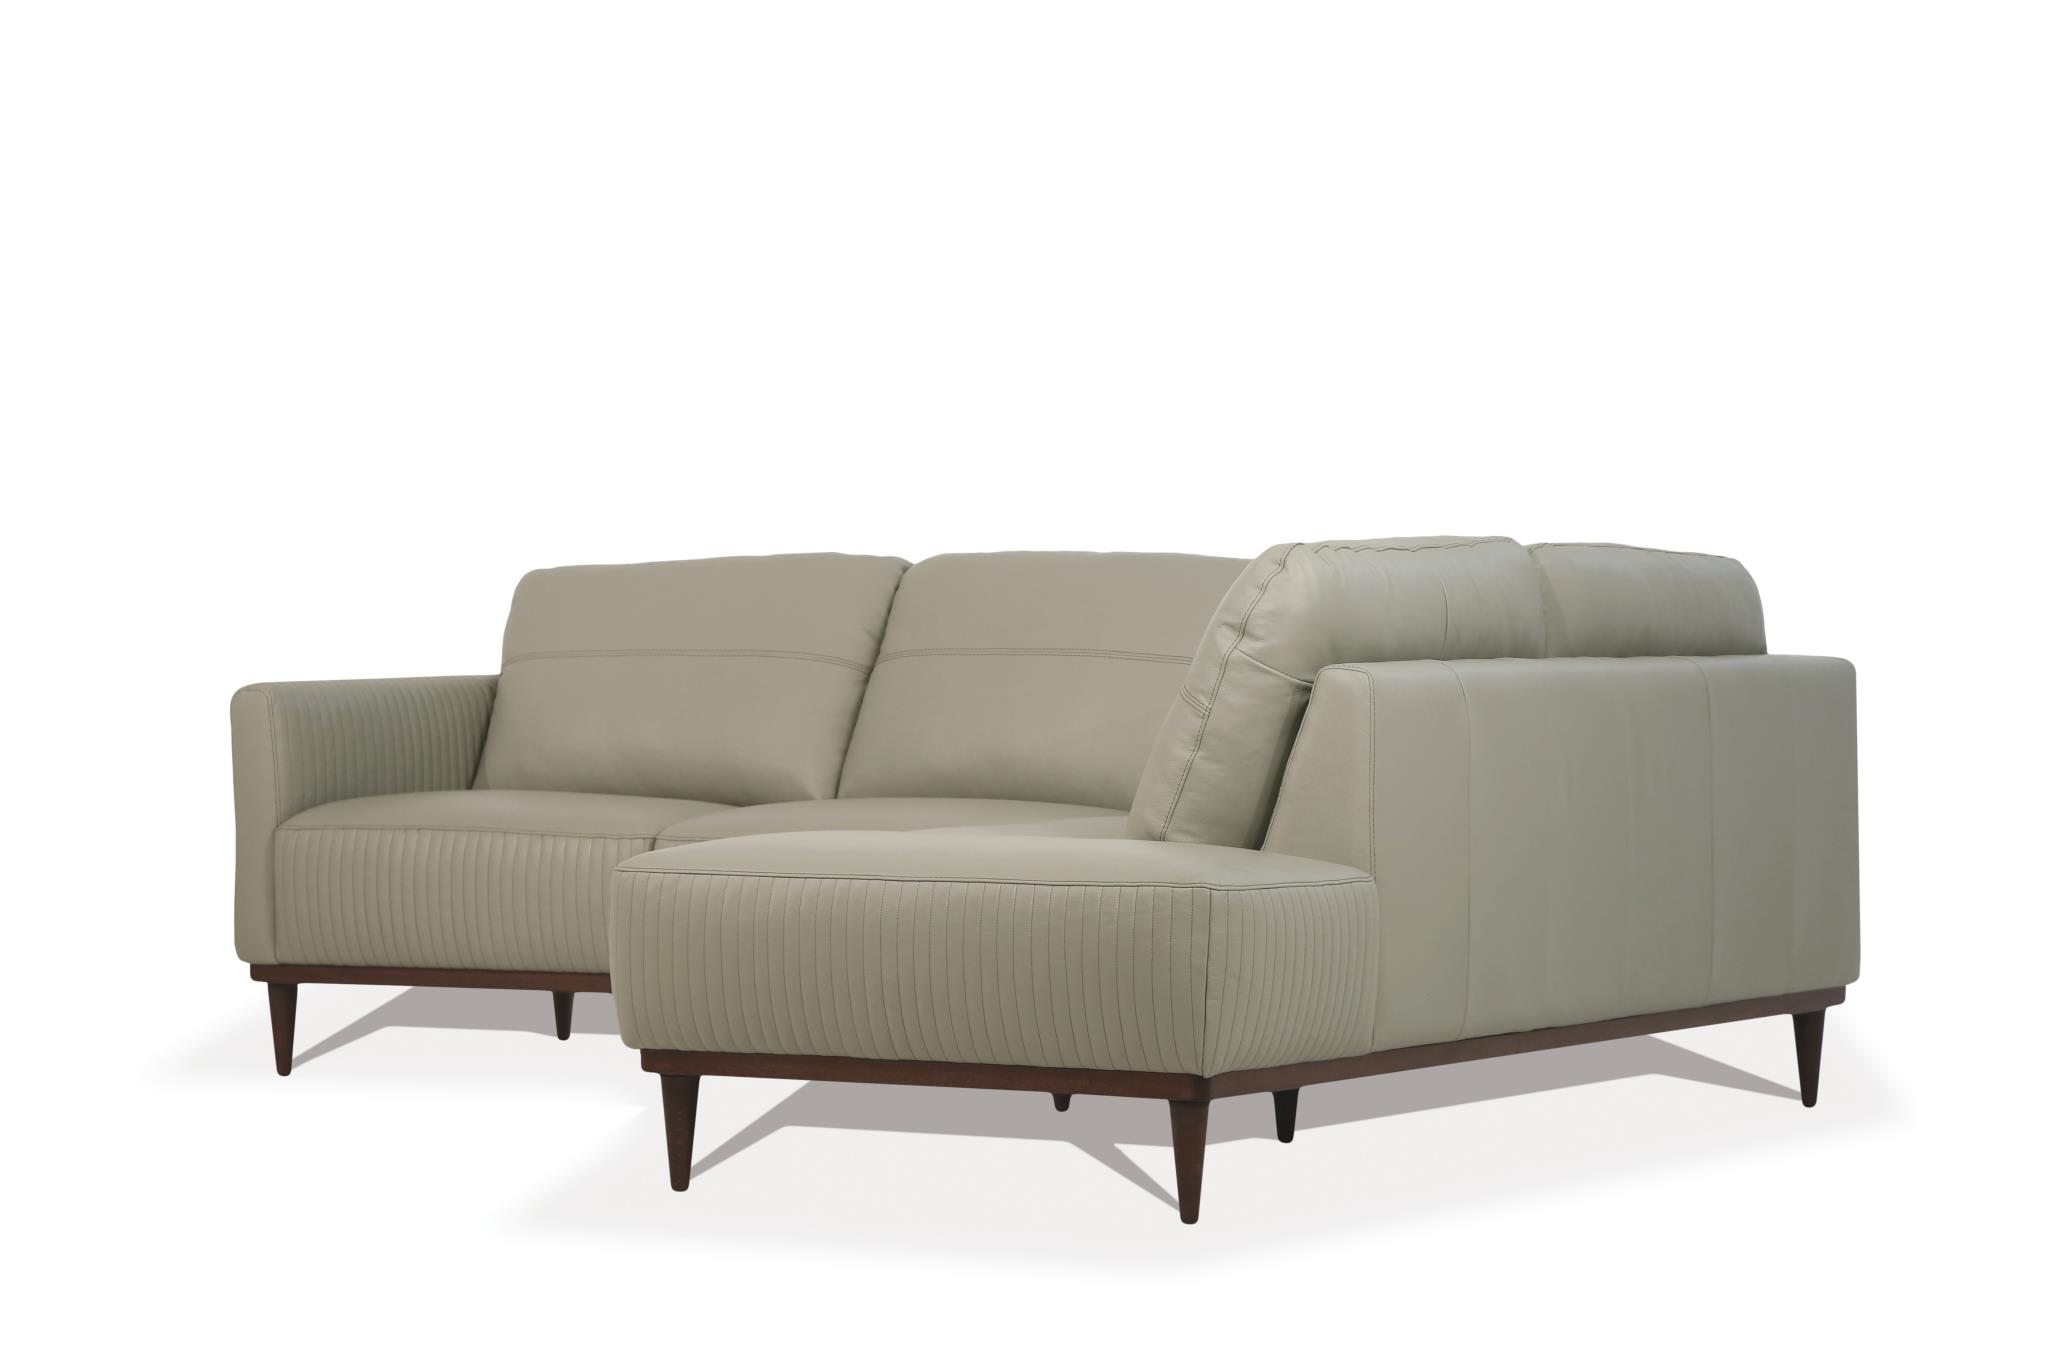 Airy Green Sectional Sofa w/ Right Facing Chaise Side Angle